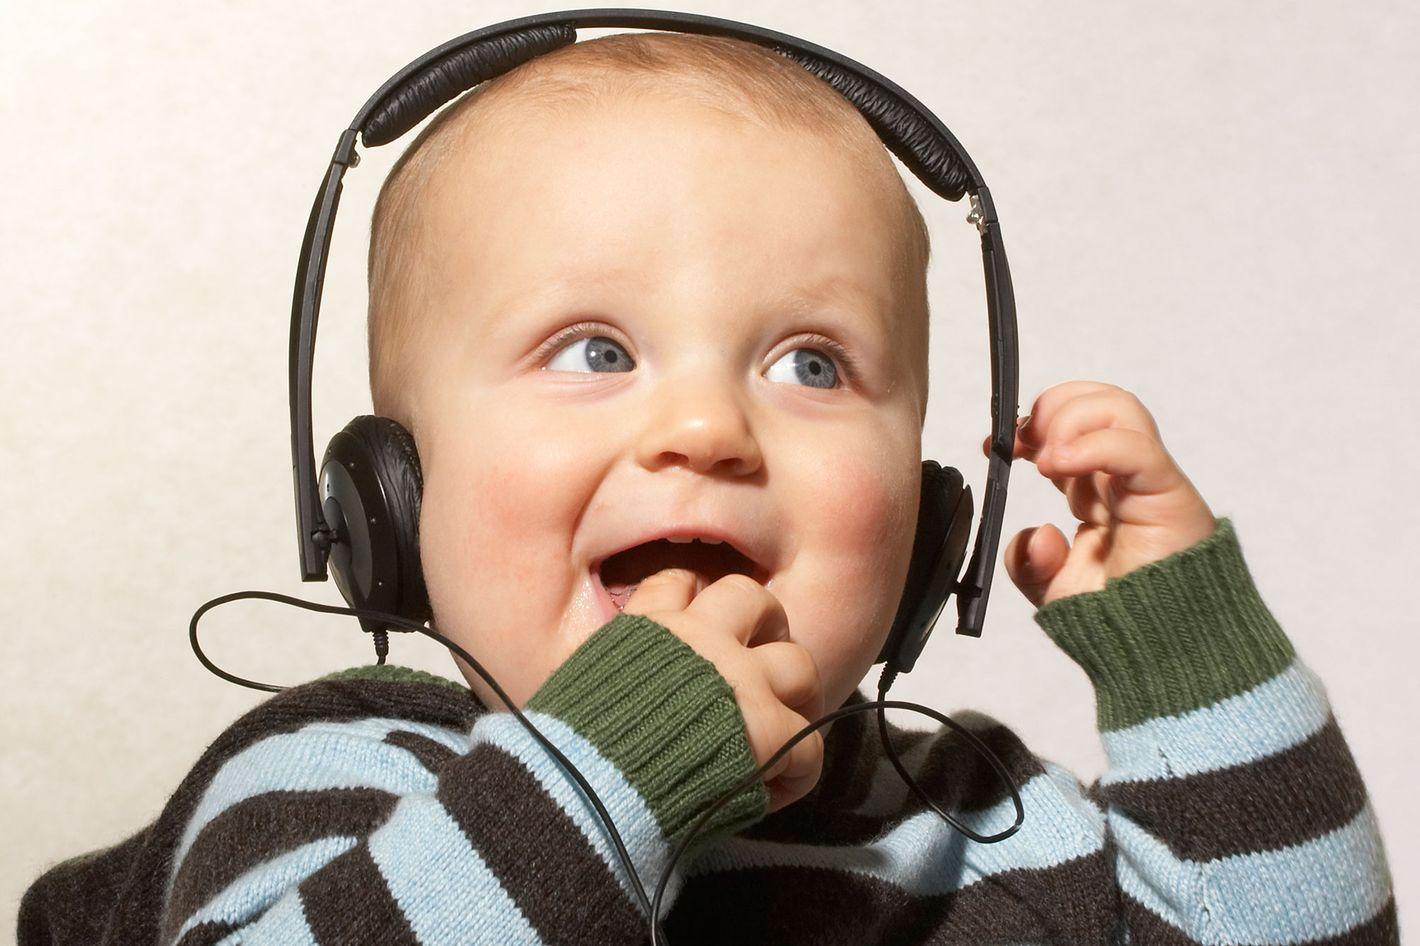 scientists engineered the perfect song to make babies laugh